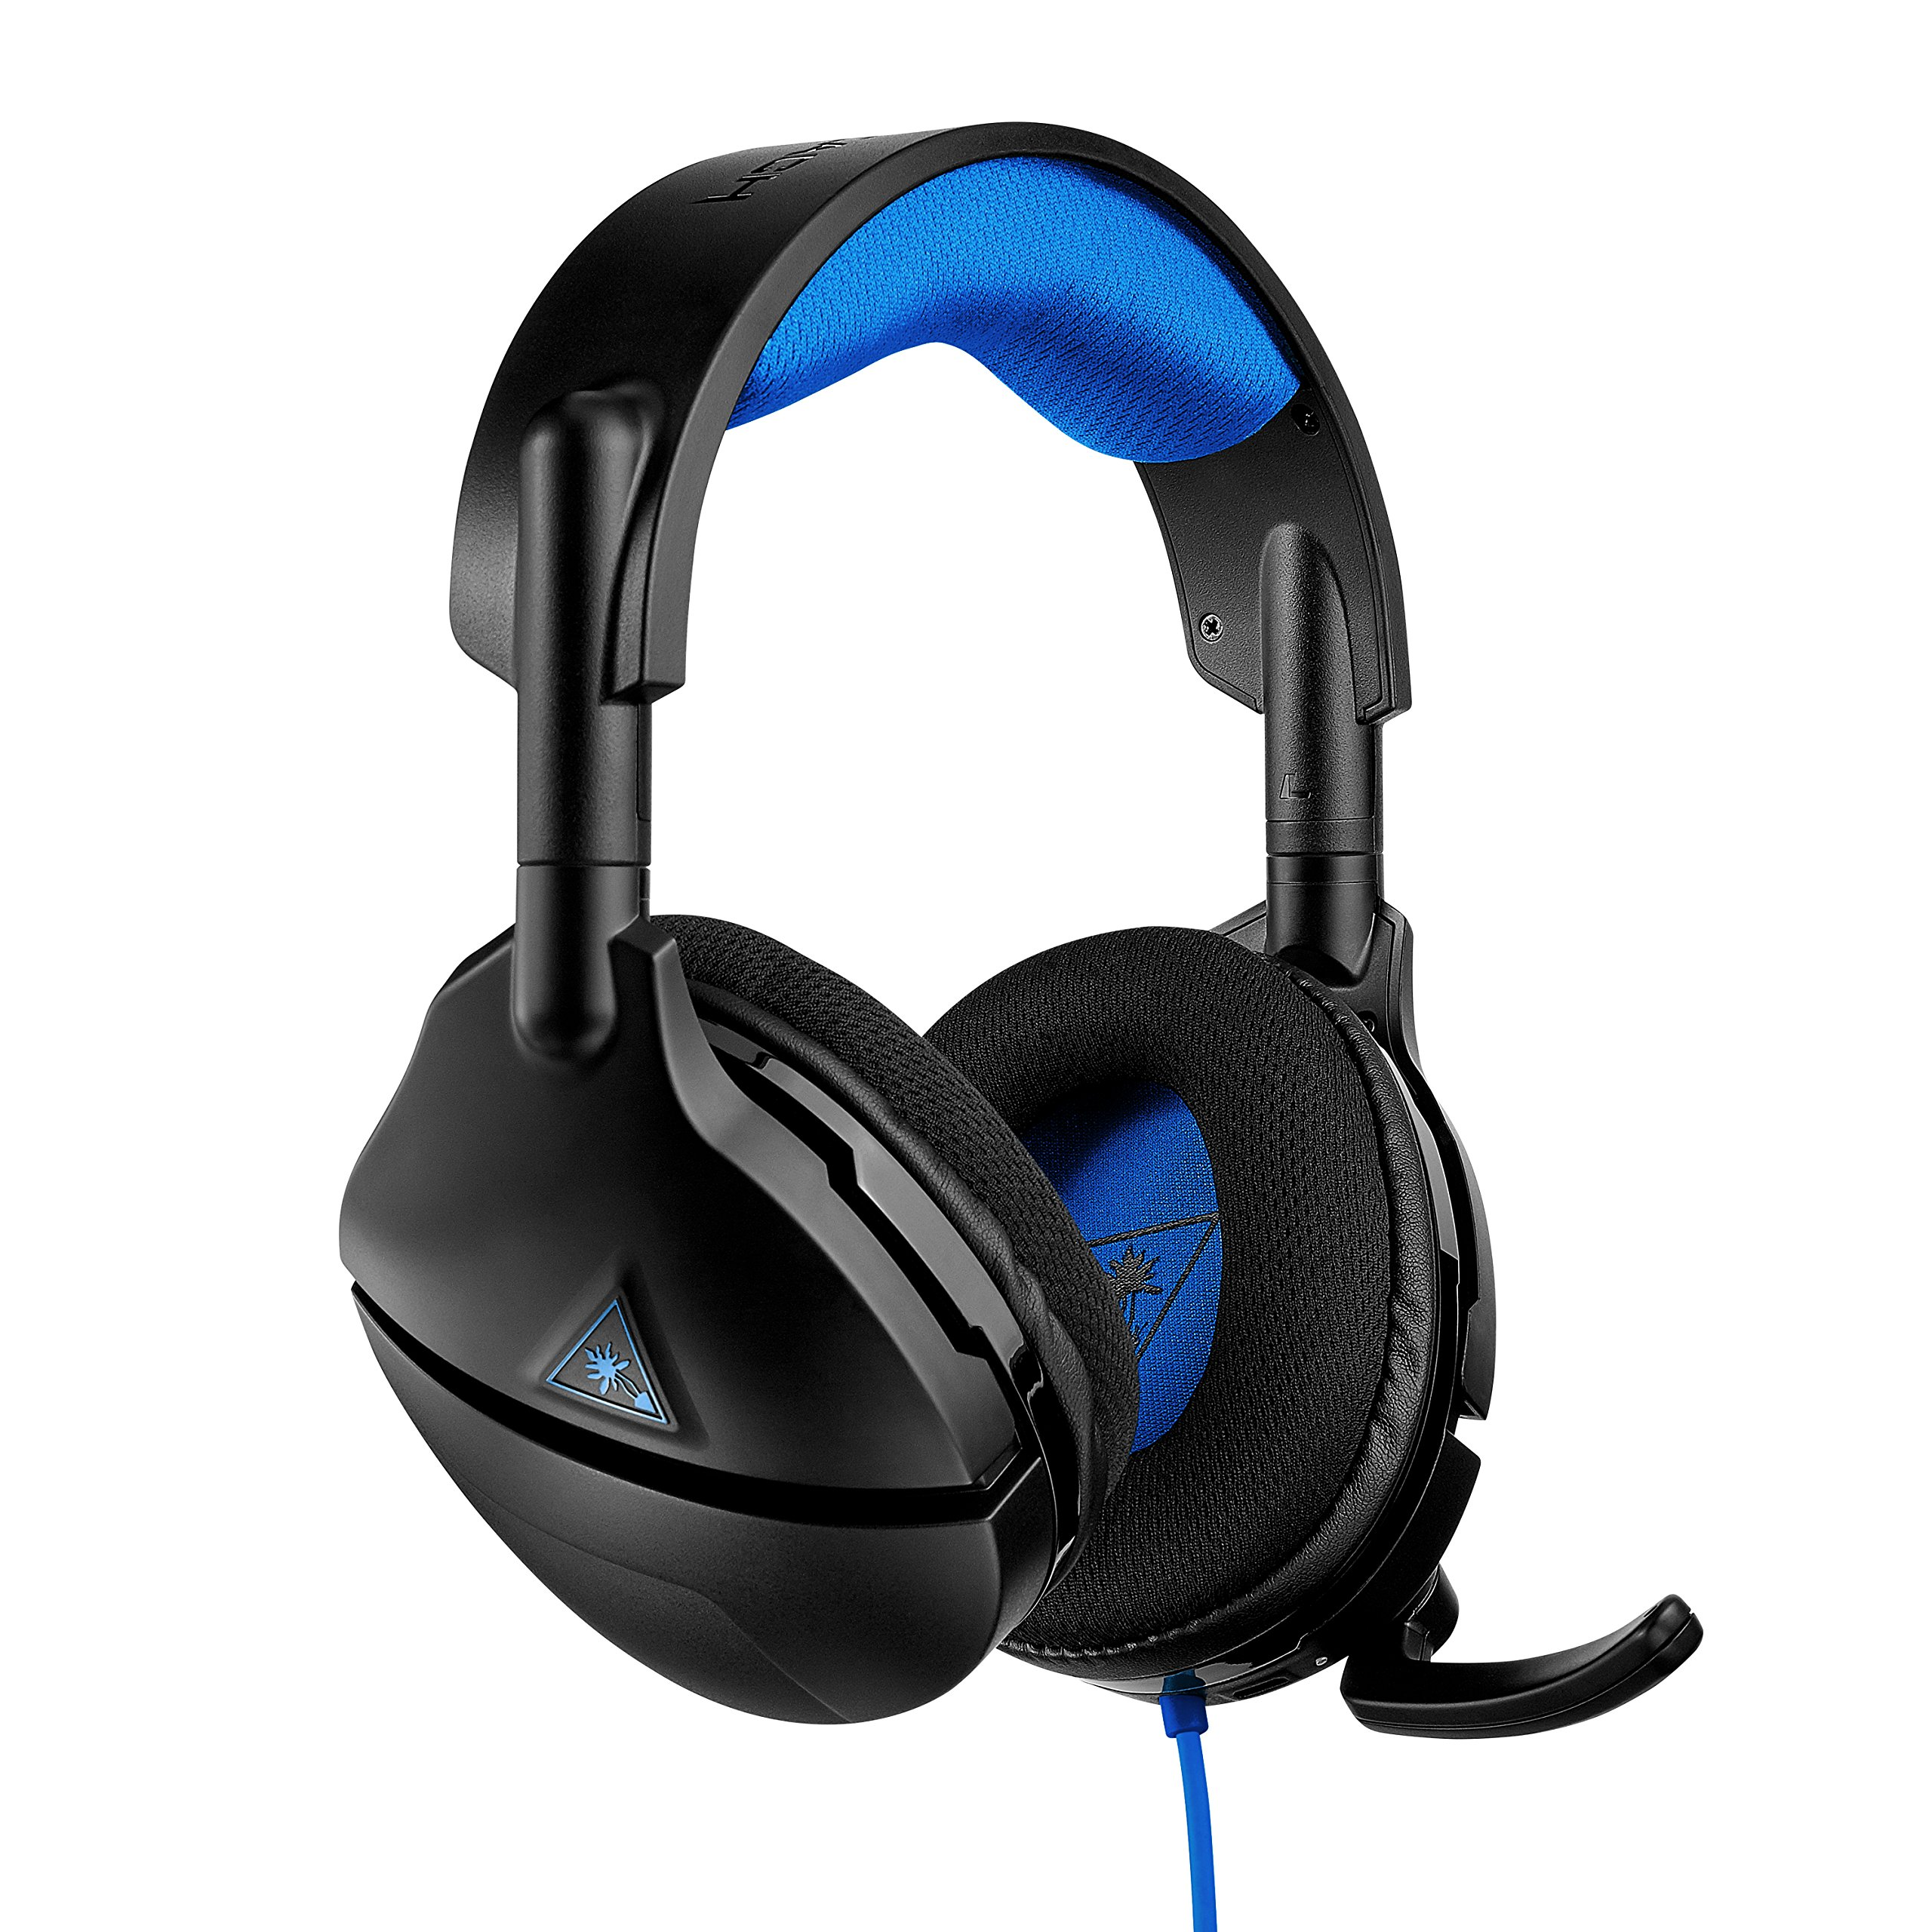 Auriculares Gamer : Turtle Beach Stealth 300 Amplified para